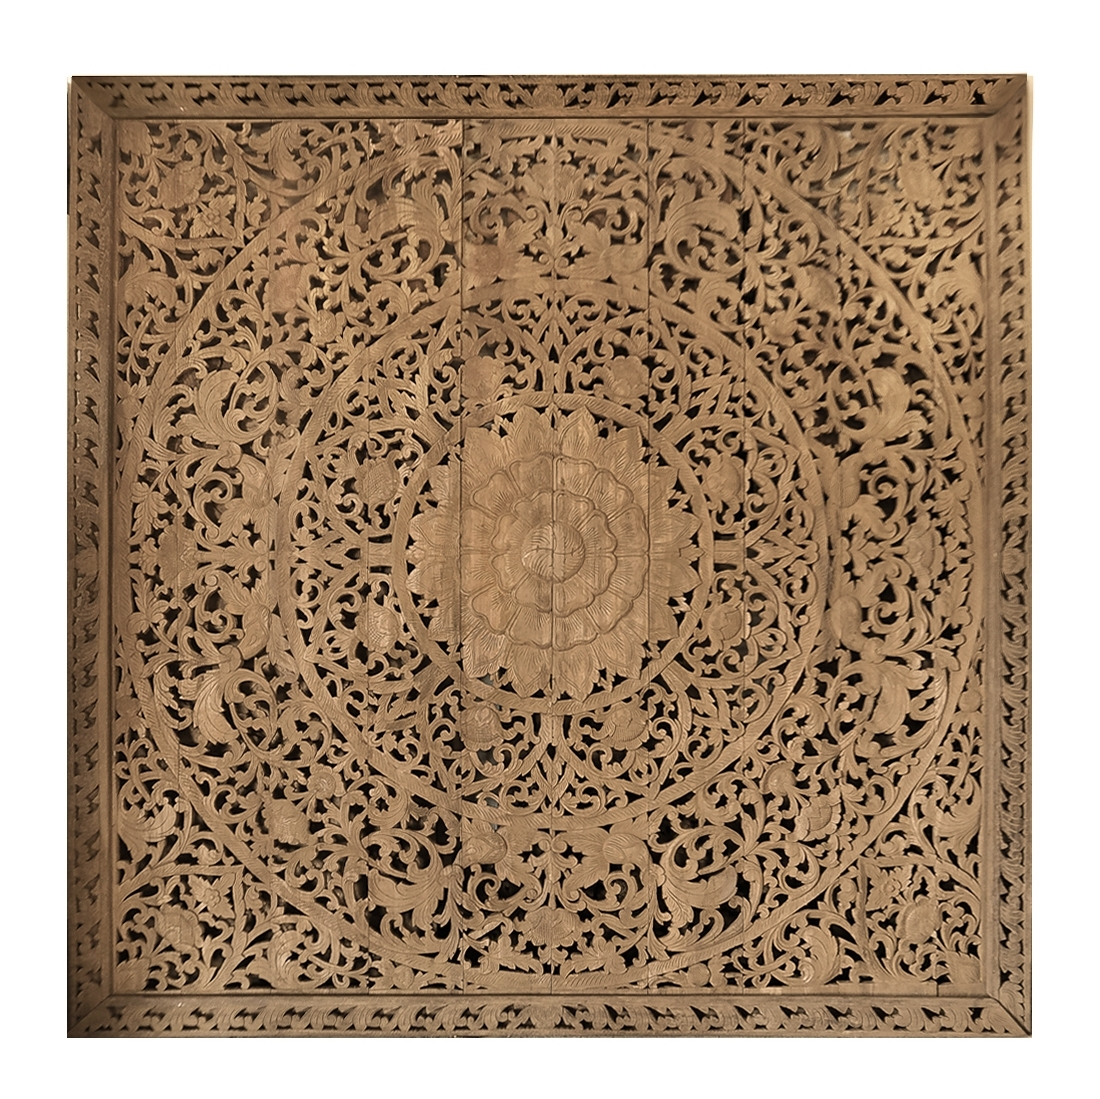 Buy Large Grand Carved Wooden Wall Art Or Ceiling Panel Online With Regard To Recent Wood Carved Wall Art (View 6 of 20)